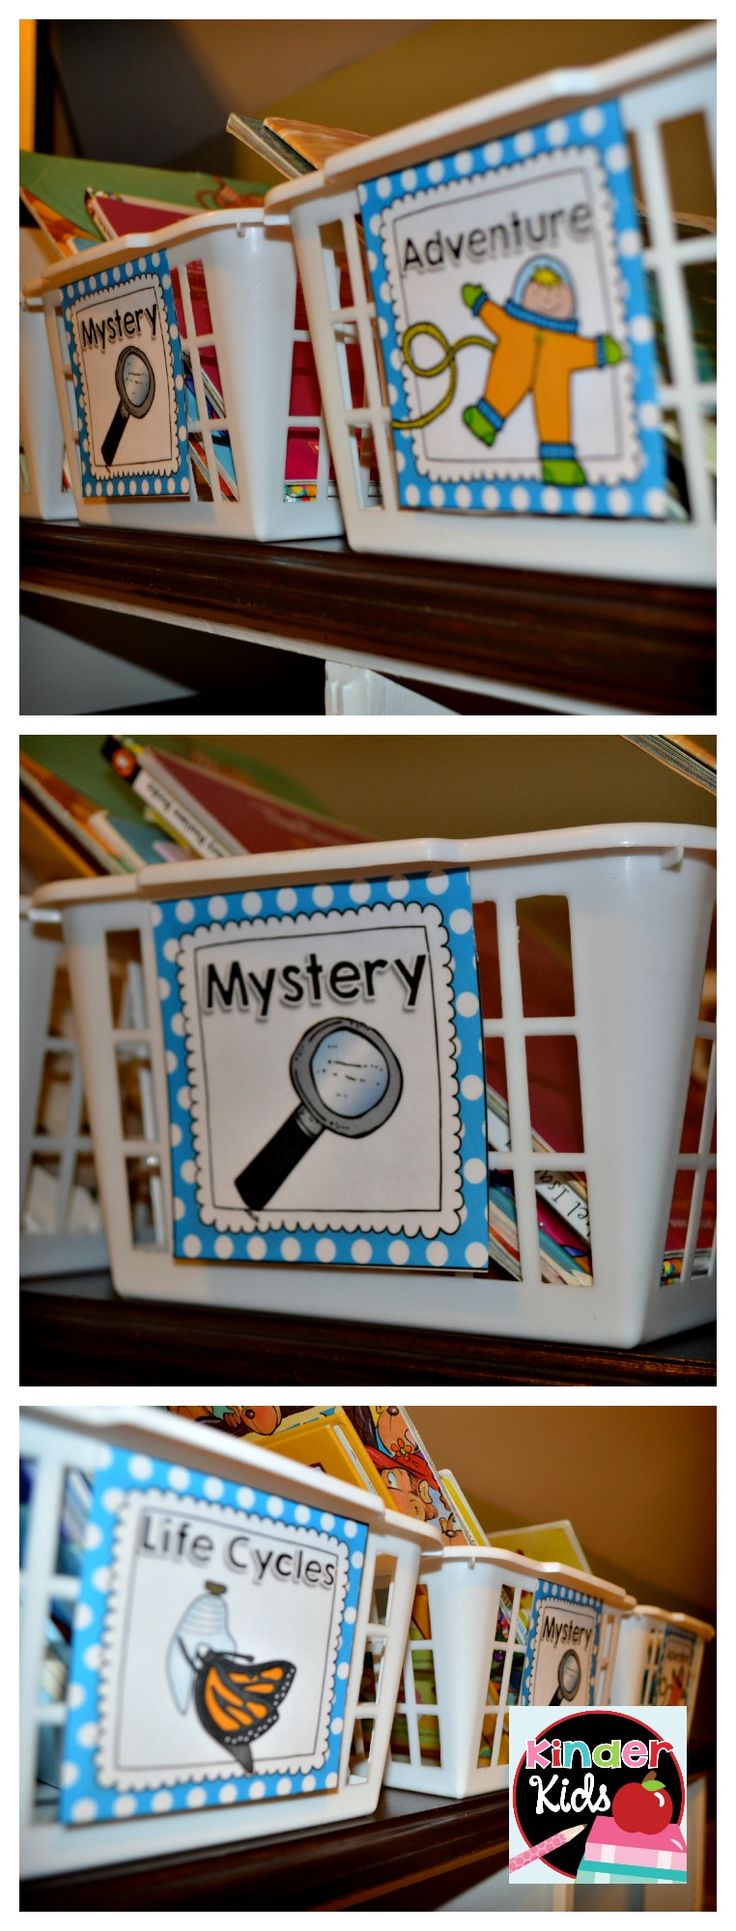 Over 198 Book Basket Labels to Organize your Classroom Library {EDITABLE page included}